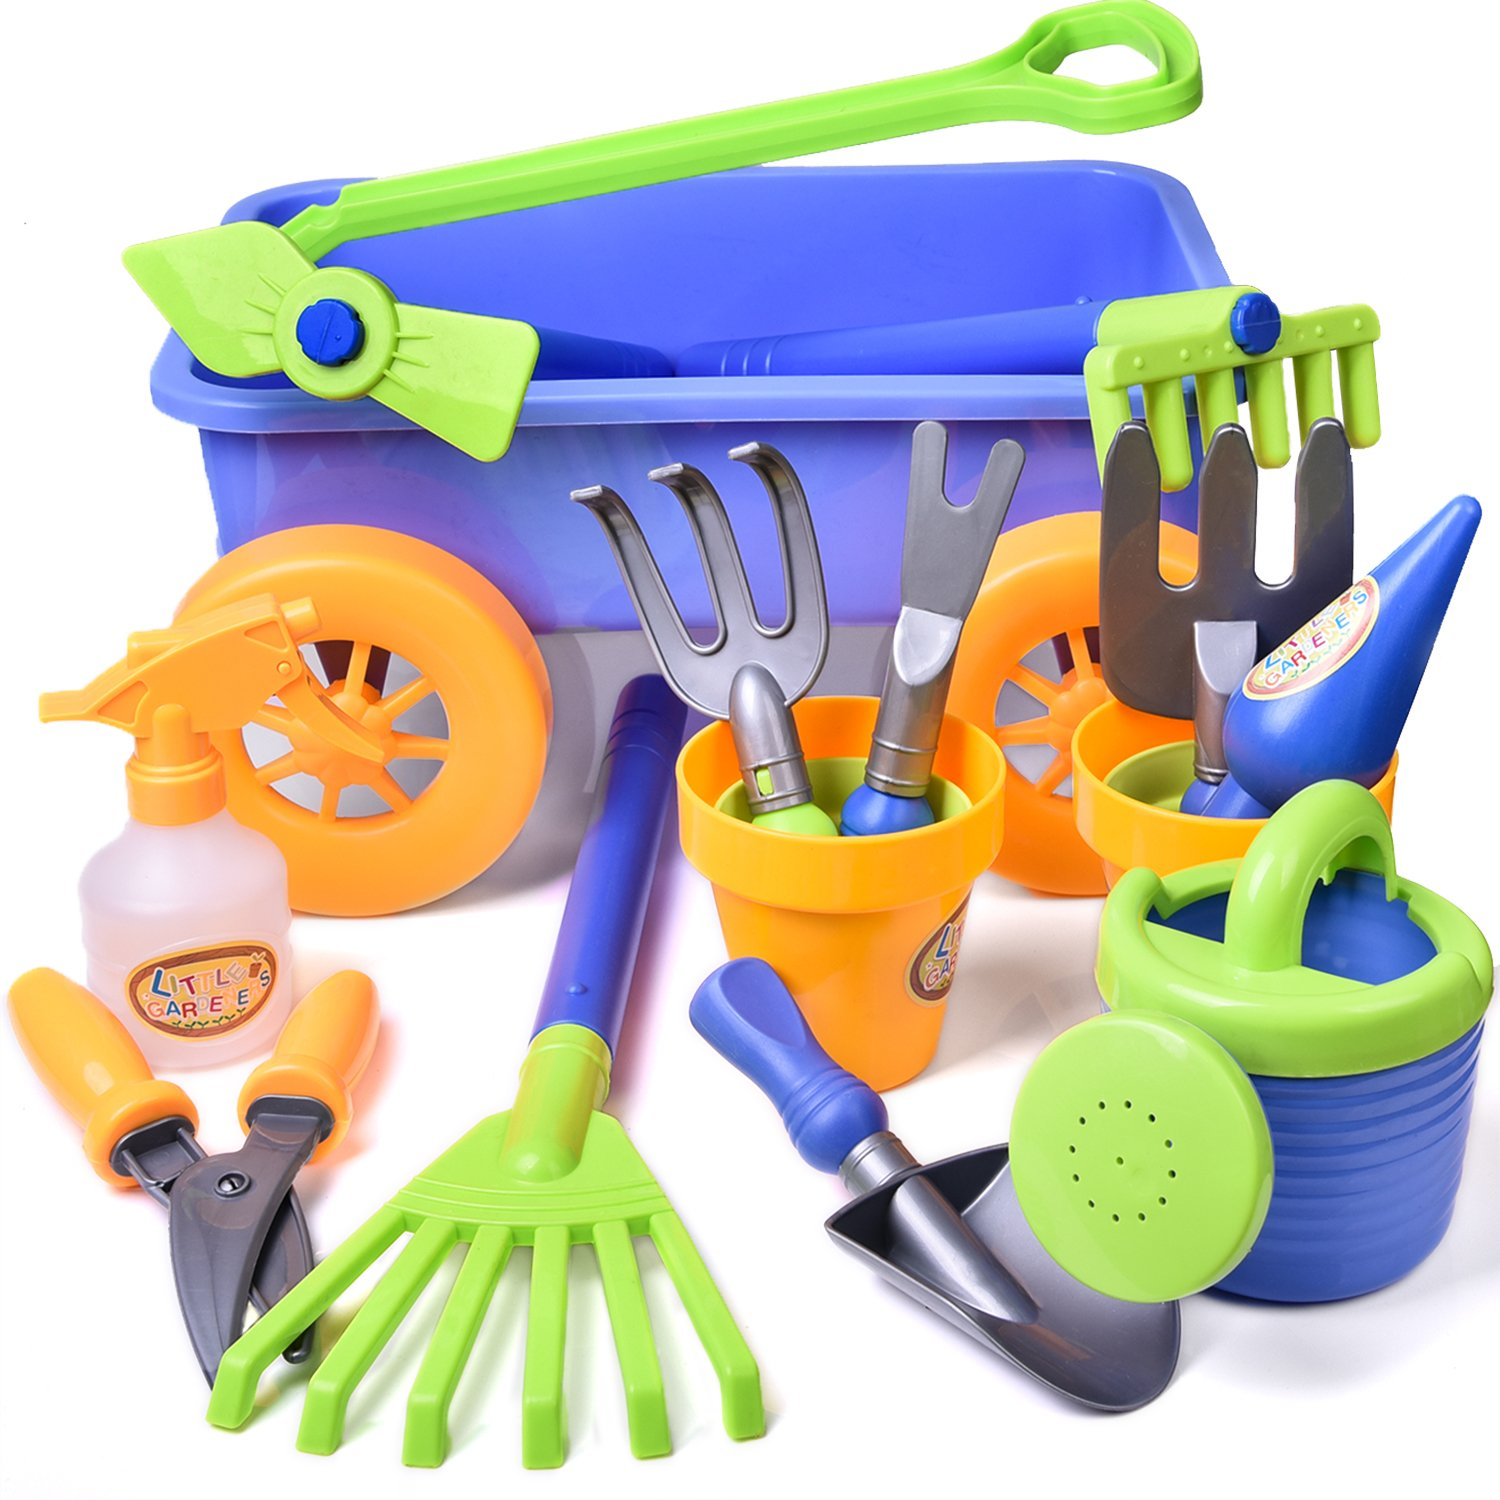 Kid's Garden Tool Toys Set, Beach Sand Toy, Kids Outdoor Toys, Gardening Backyard Tool Set Wagon Other Garden Tools- 16 PCs by FUN LITTLE TOYS